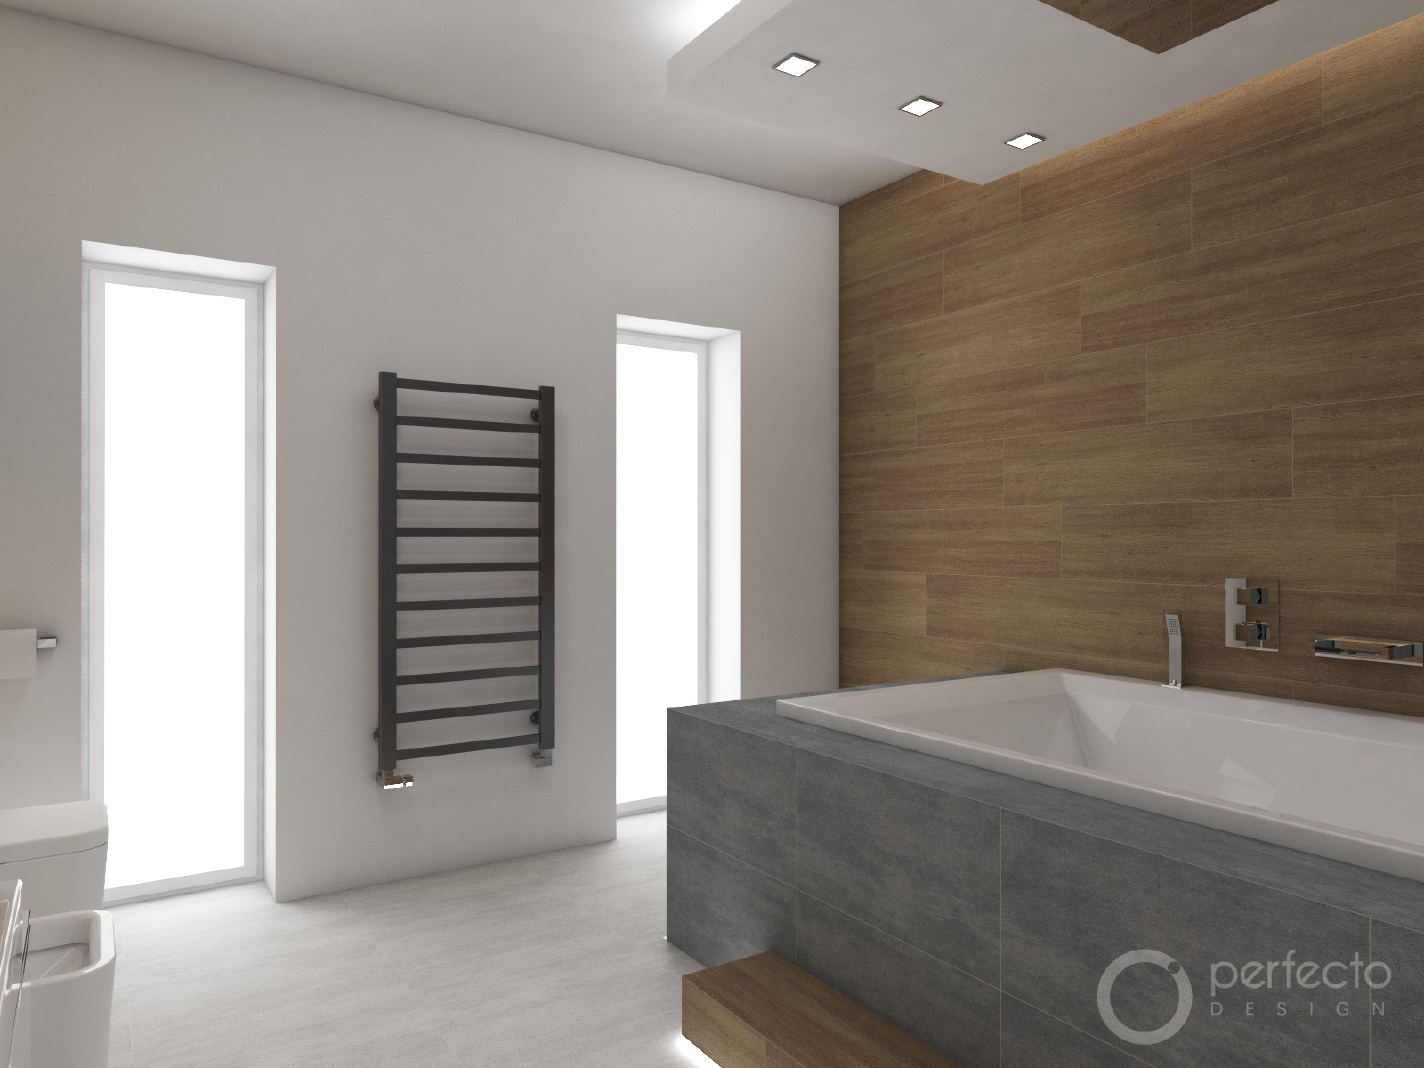 Modernes badezimmer note perfecto design for Badezimmer modernes design